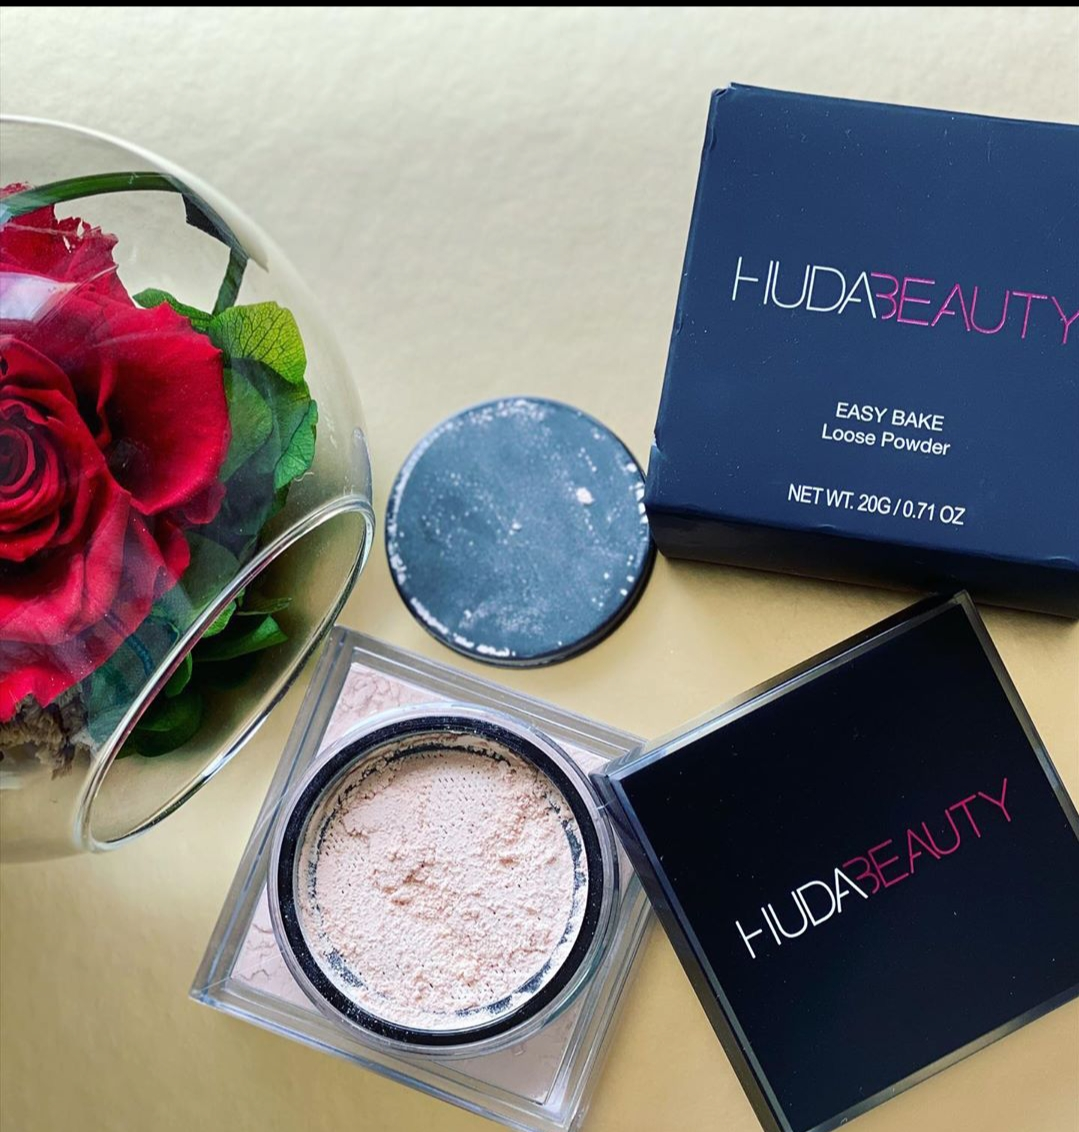 Huda Beauty Easy Bake Loose Powder-Perfect loose powder-By alice_swift